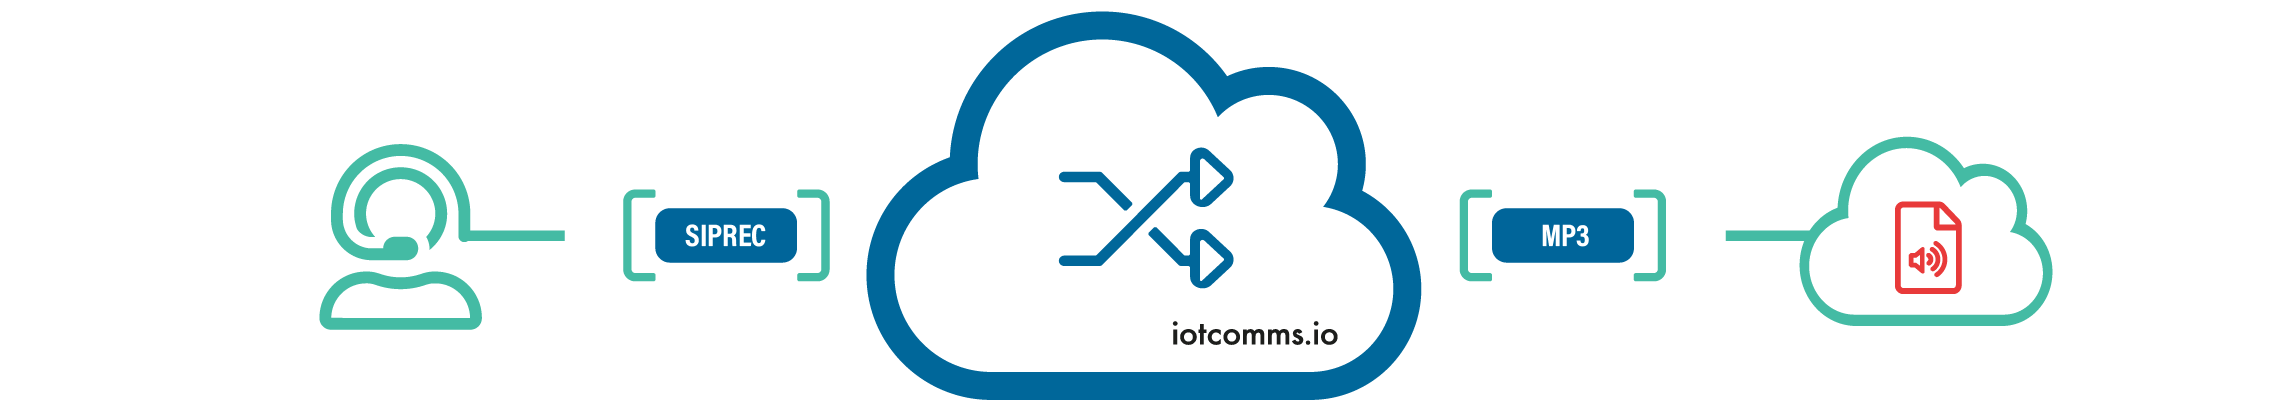 Modernize your call recording solution with Call Recording as a function from iotcomms.io